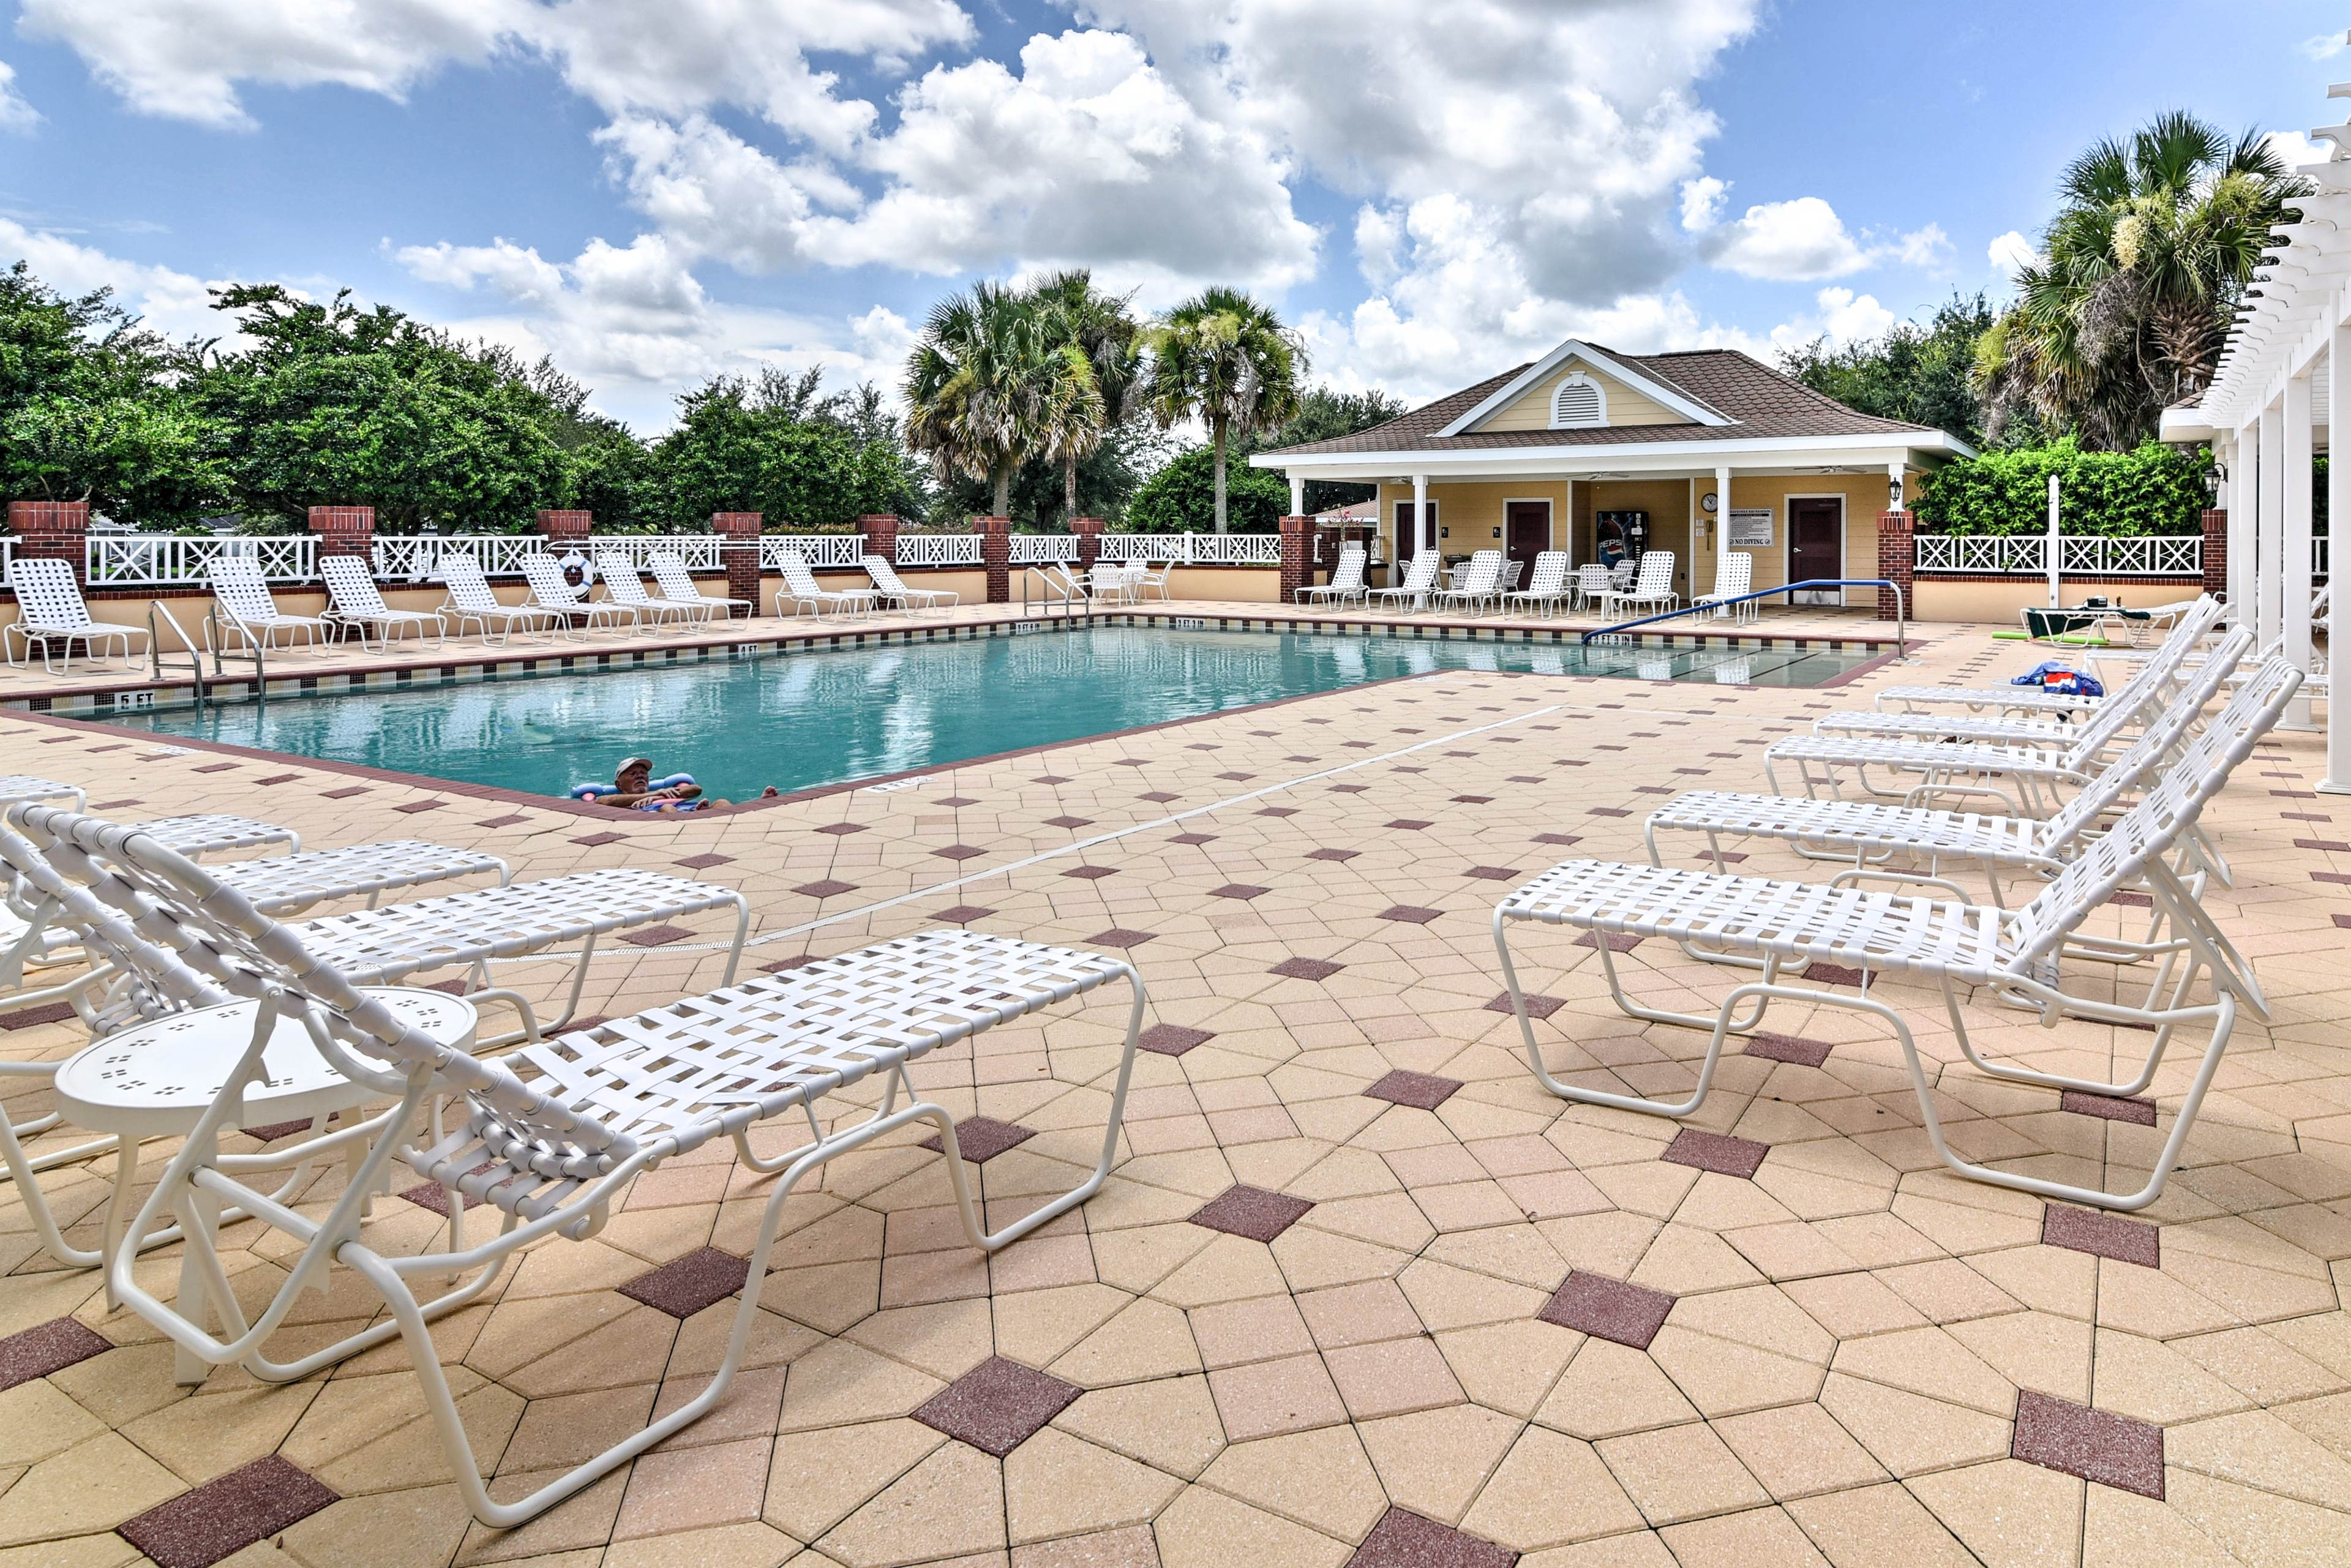 'The Villages' features an array of luxury amenities!